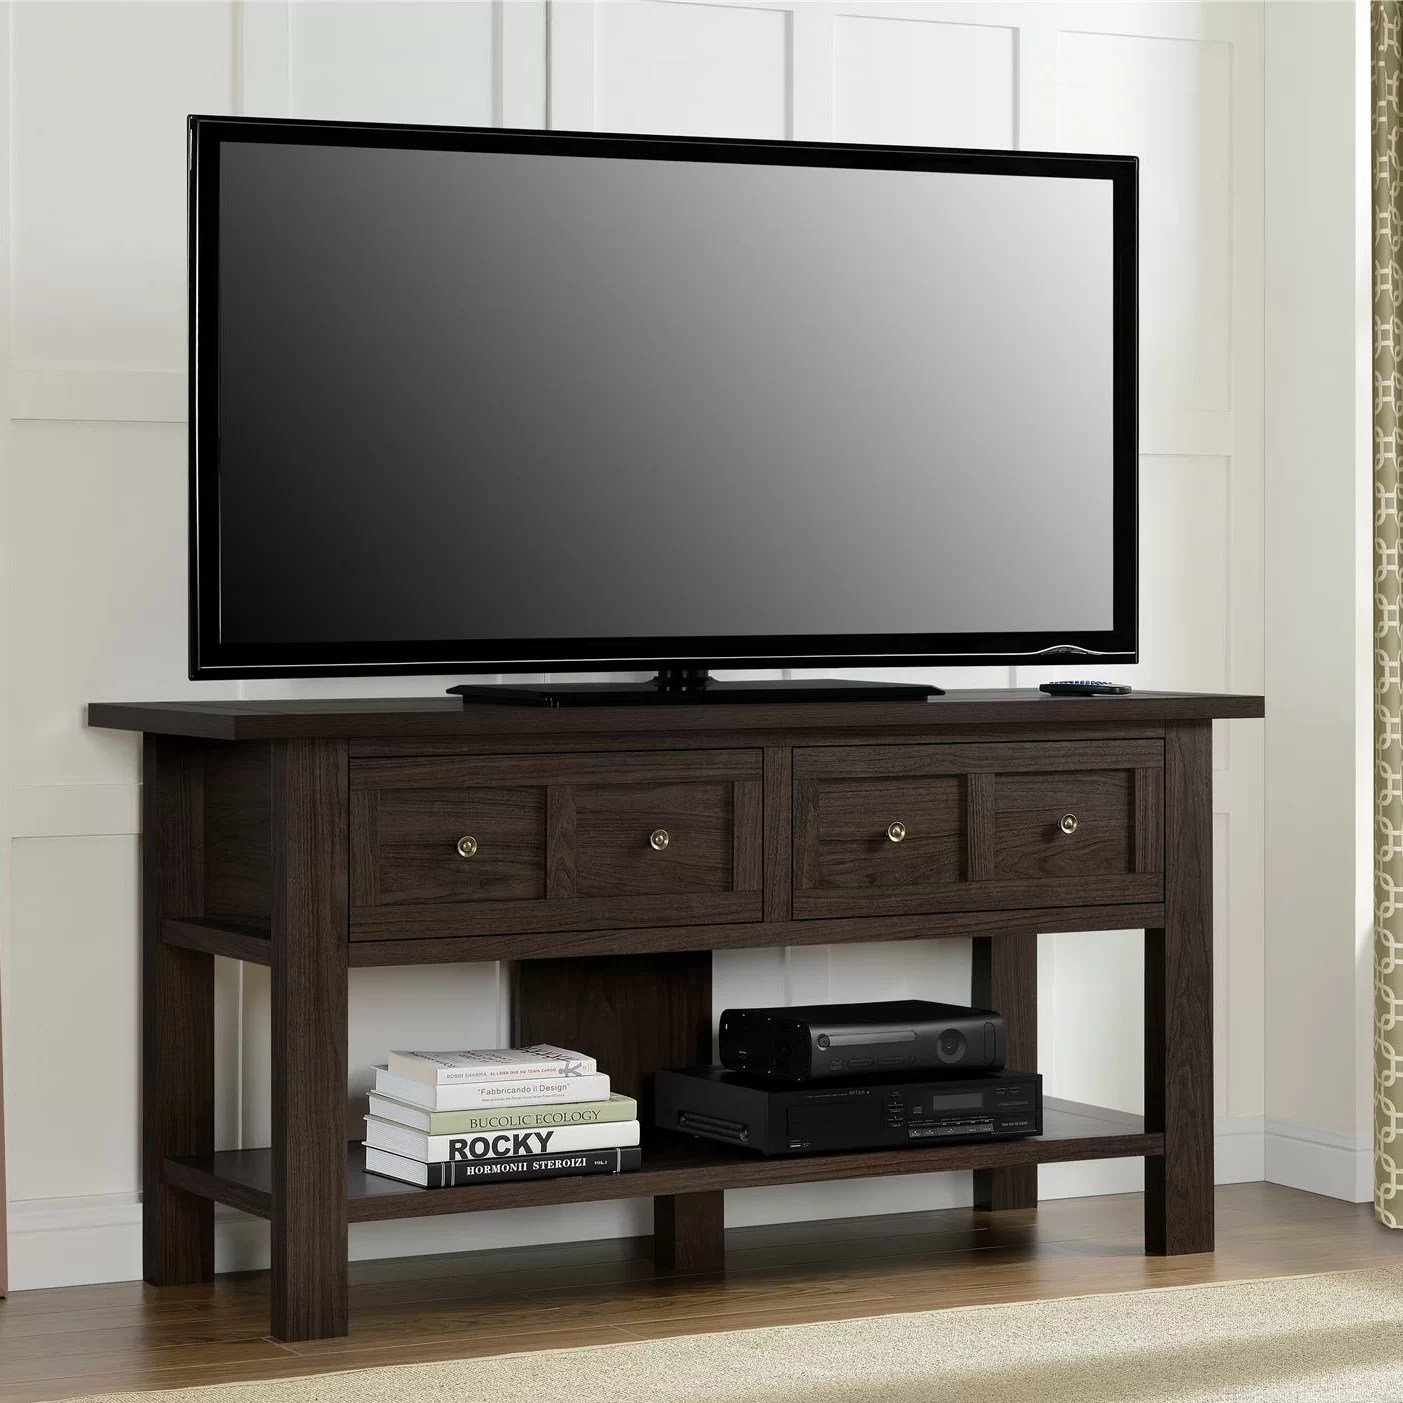 Tv Table August Grove Loanne Tv Stand And Reviews Wayfair